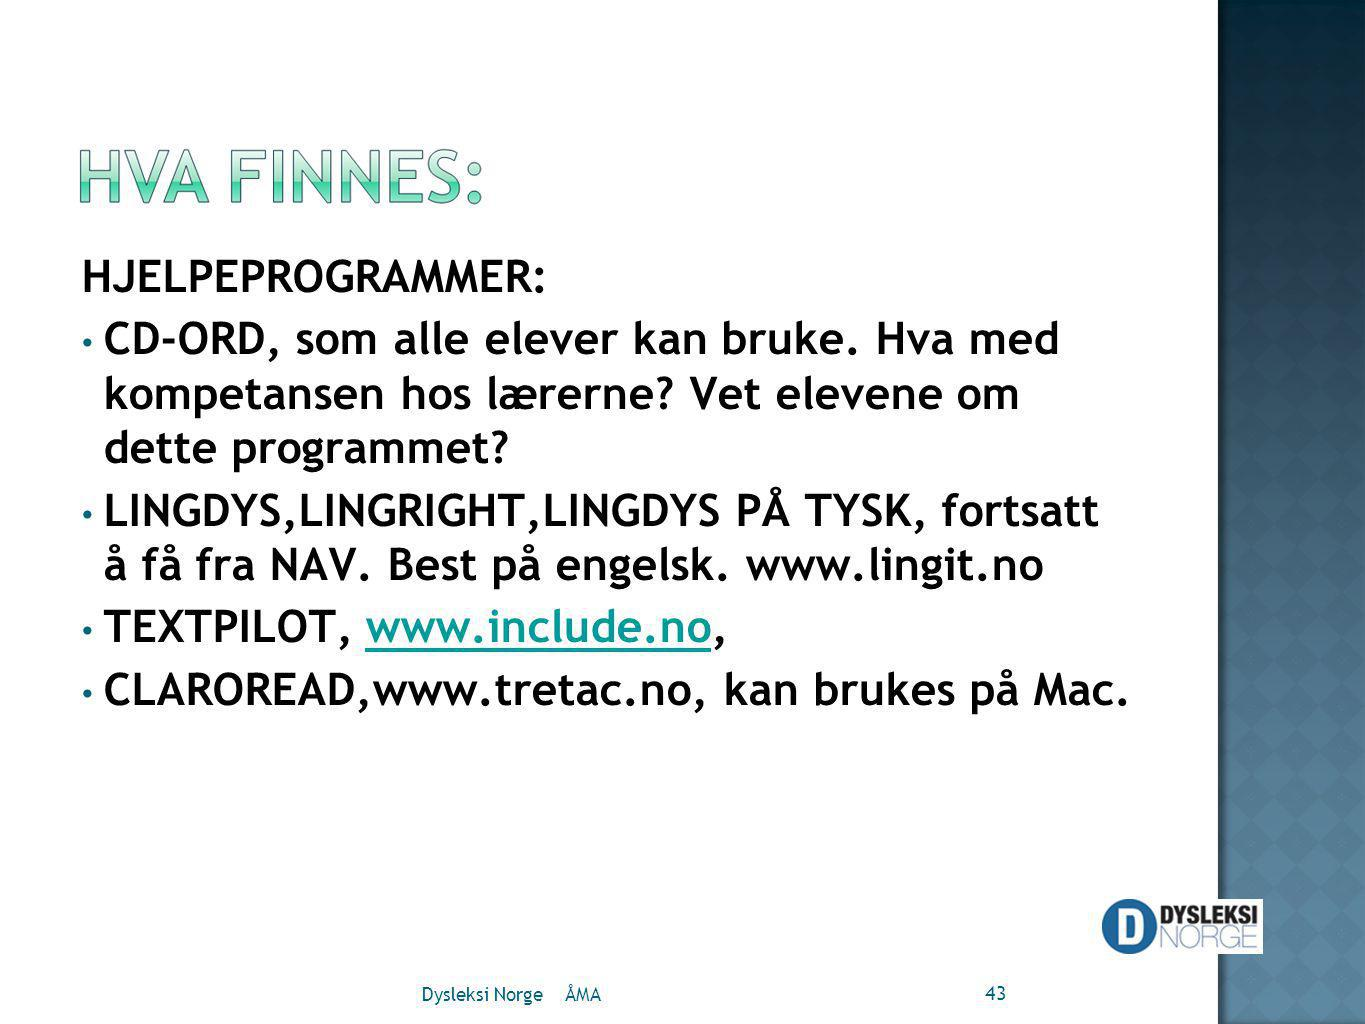 TEXTPILOT, www.include.no, CLAROREAD,www.tretac.no, kan brukes på Mac.